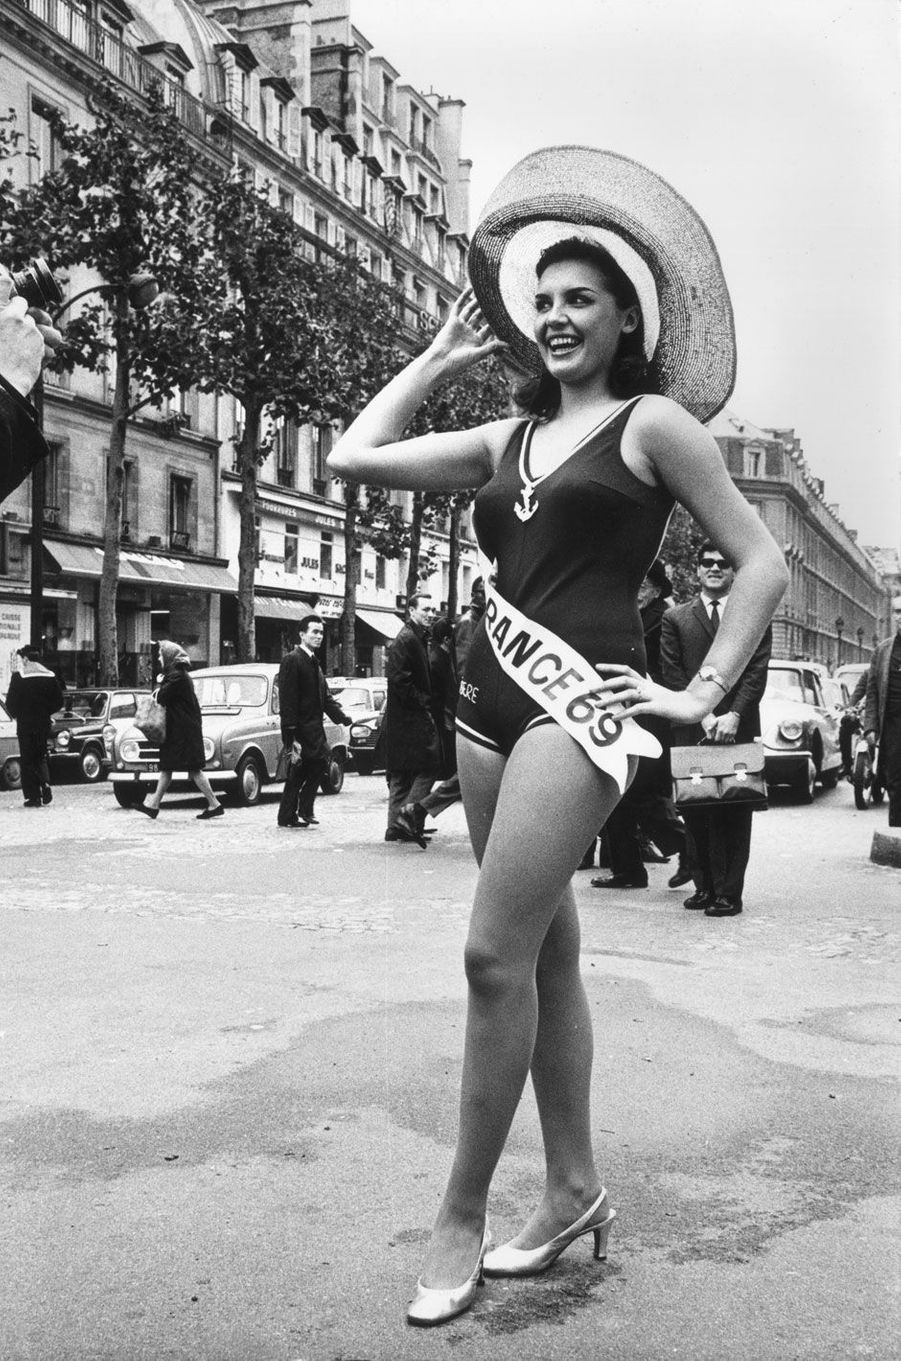 Miss France 1969, Suzanne Angly